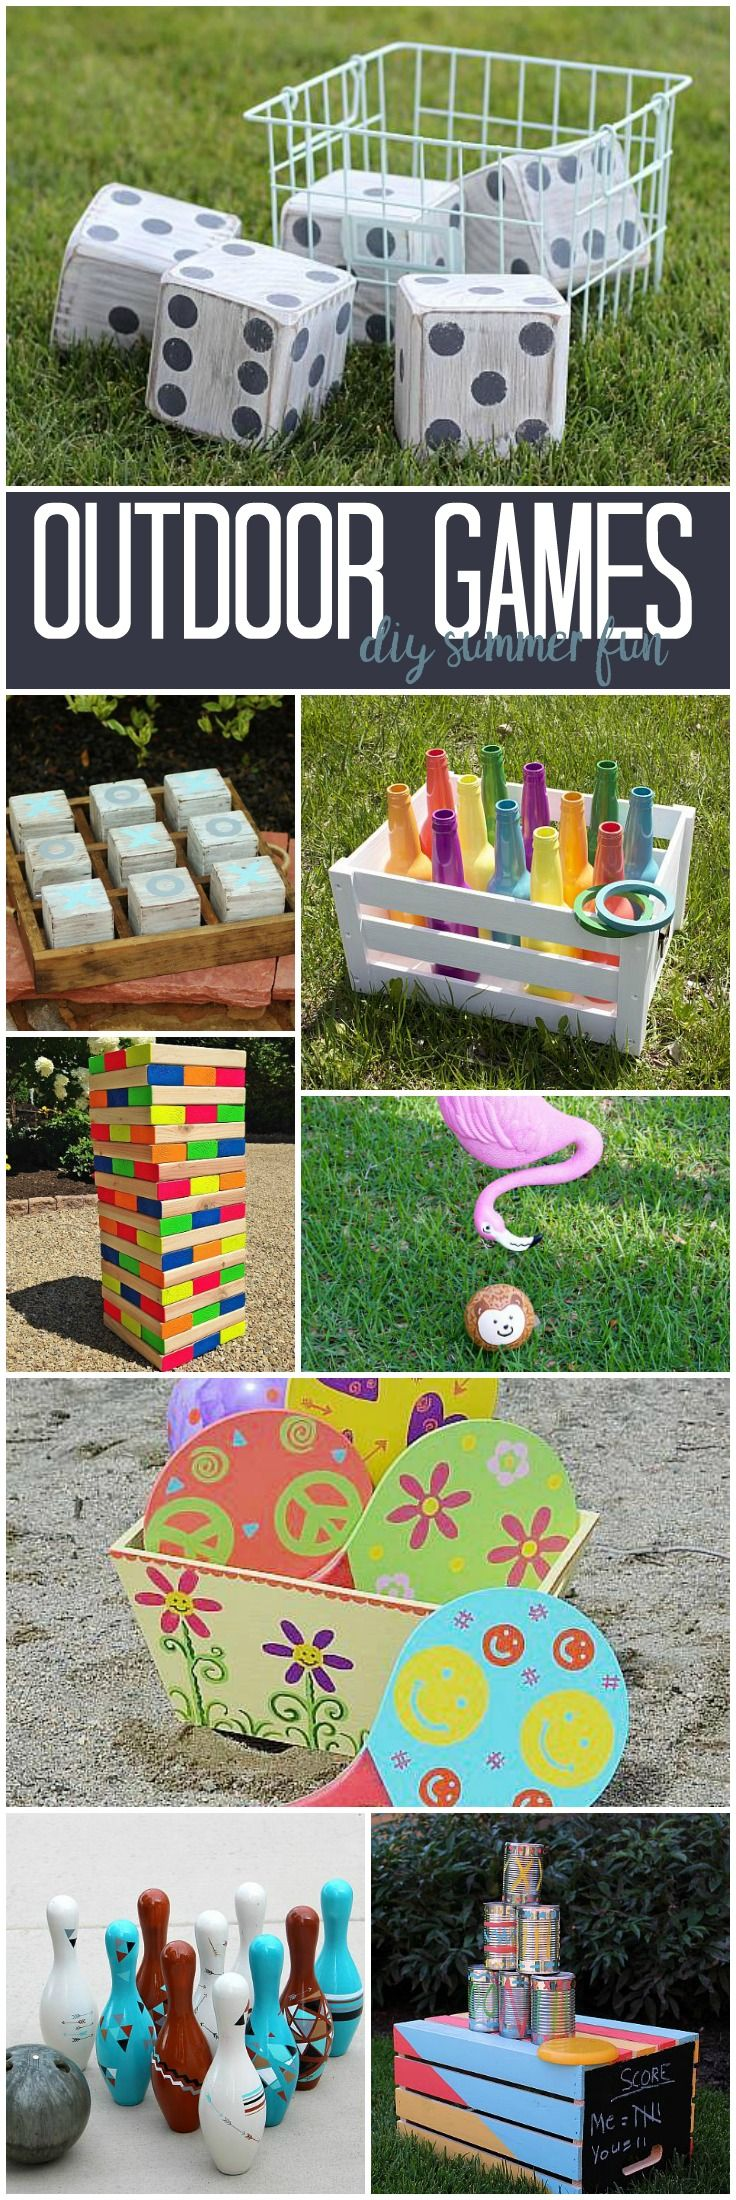 diy outdoor games from the decoart project gallery